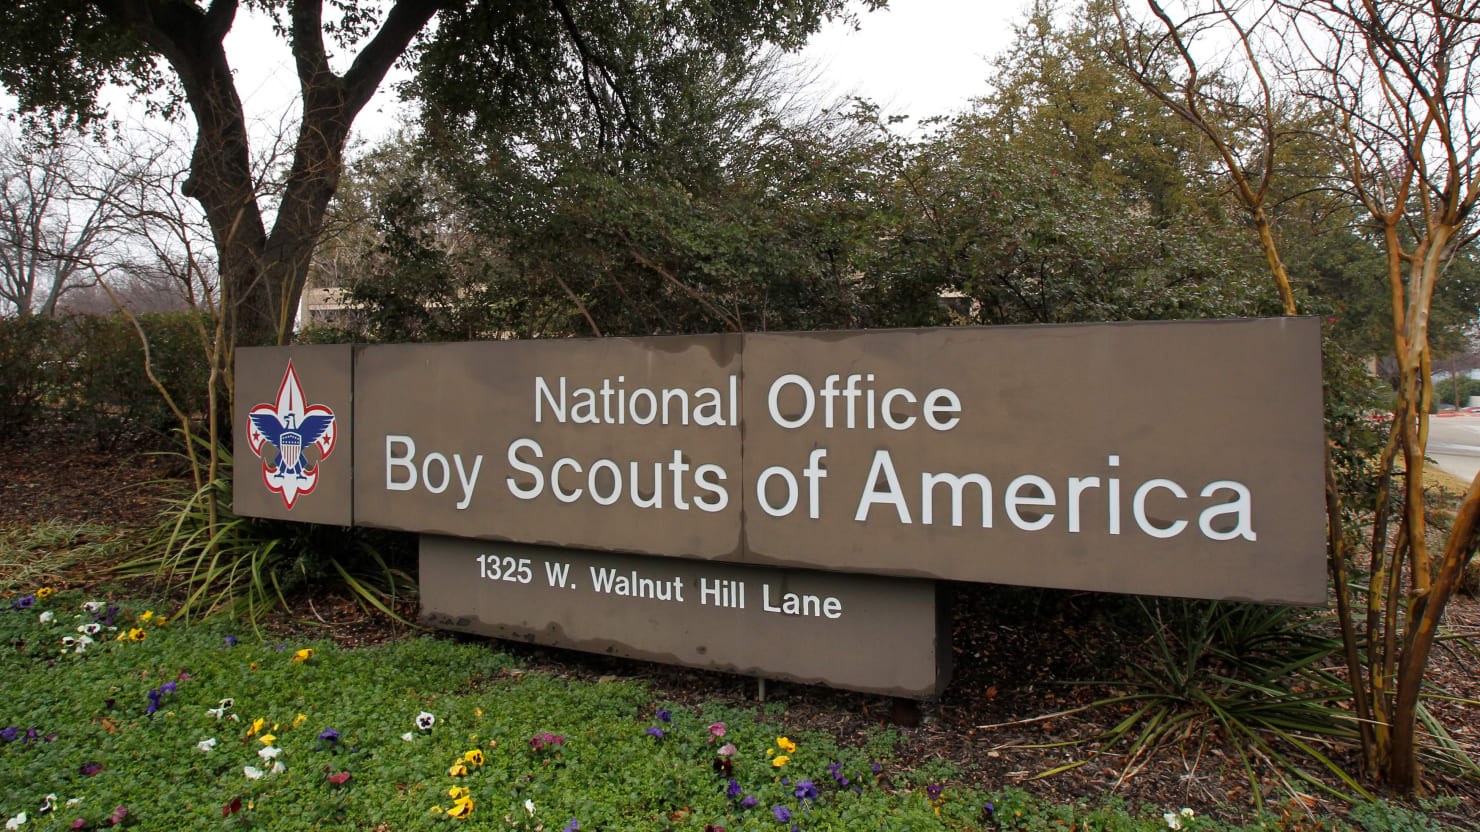 Boy Scouts of America Forced to File for Bankruptcy to Deal With Sex Abuse Lawsuits